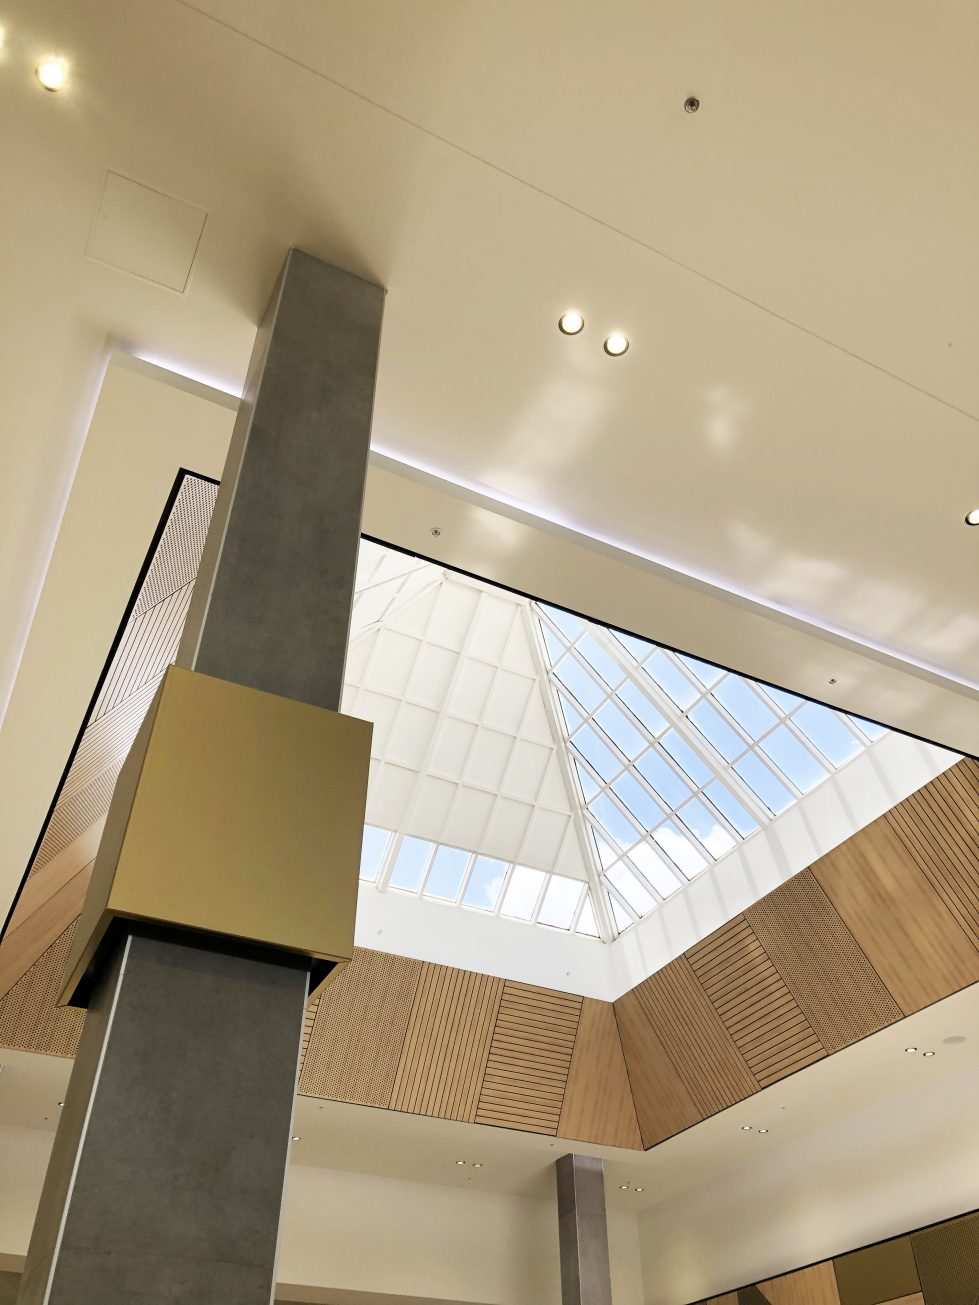 design clarity, shopping center design, cladding detail, roof light, timber panelling, brass signage